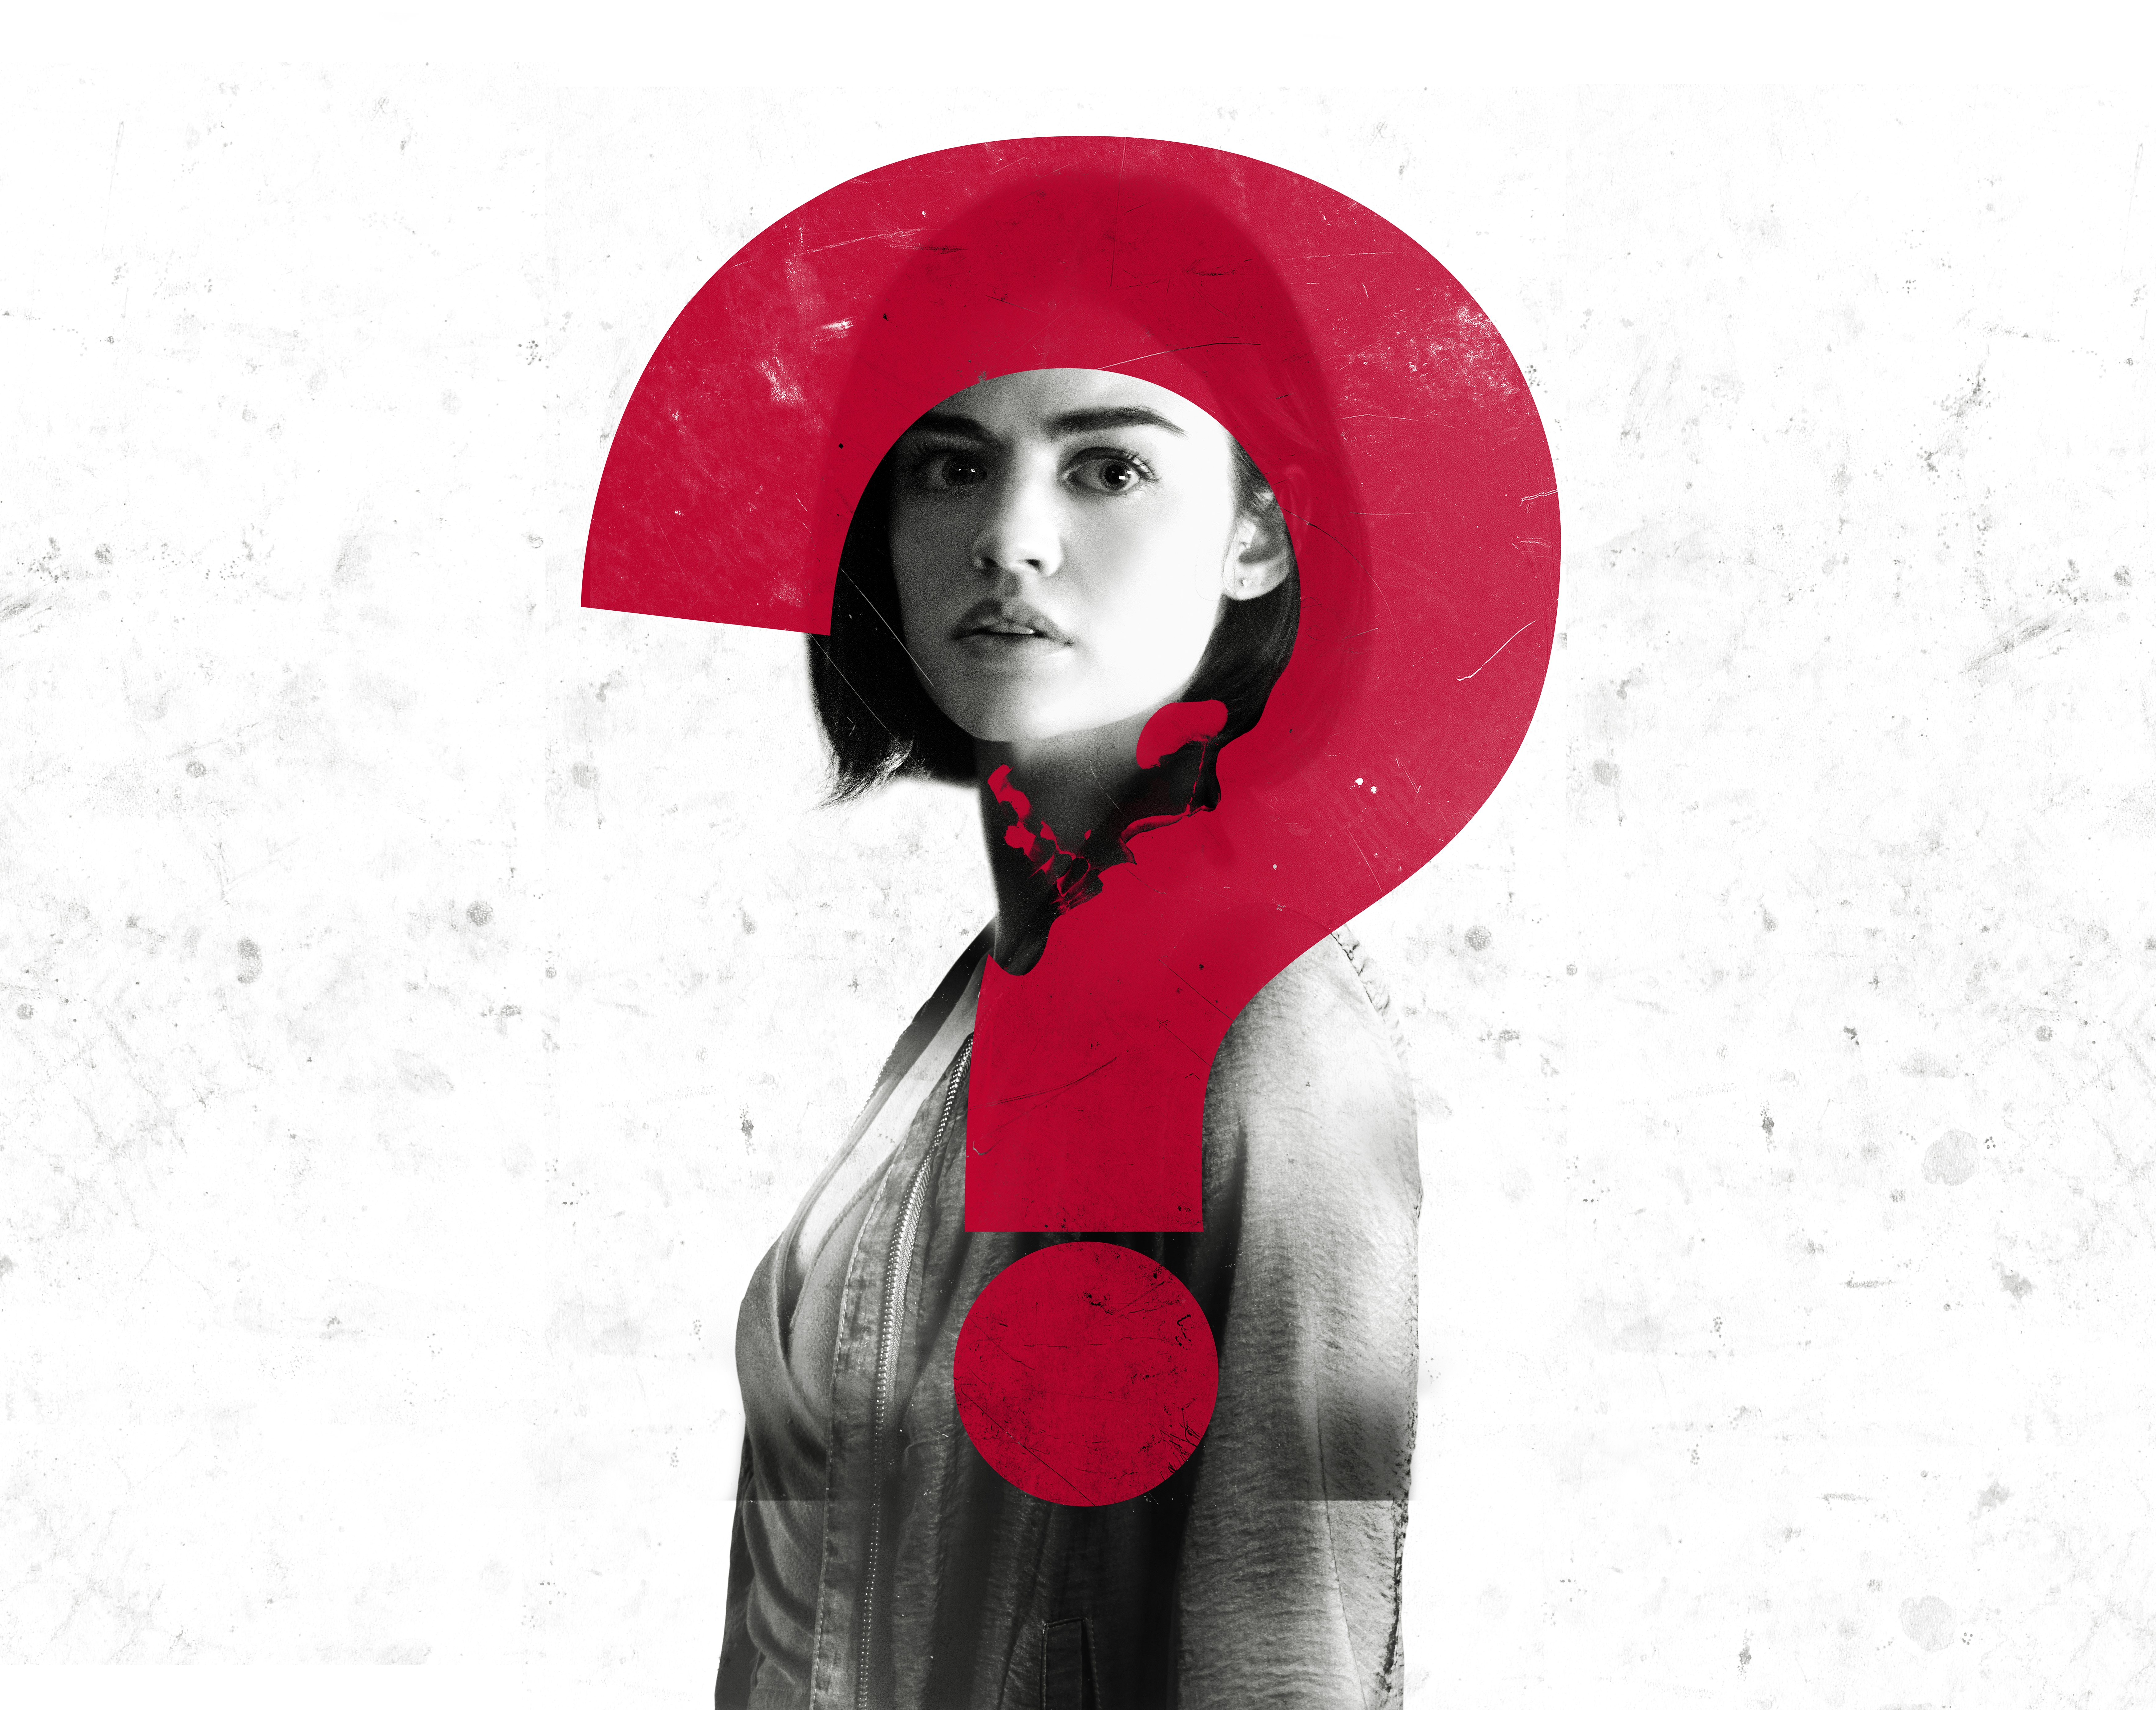 truth or dare 2018 8k poster, hd movies, 4k wallpapers, images